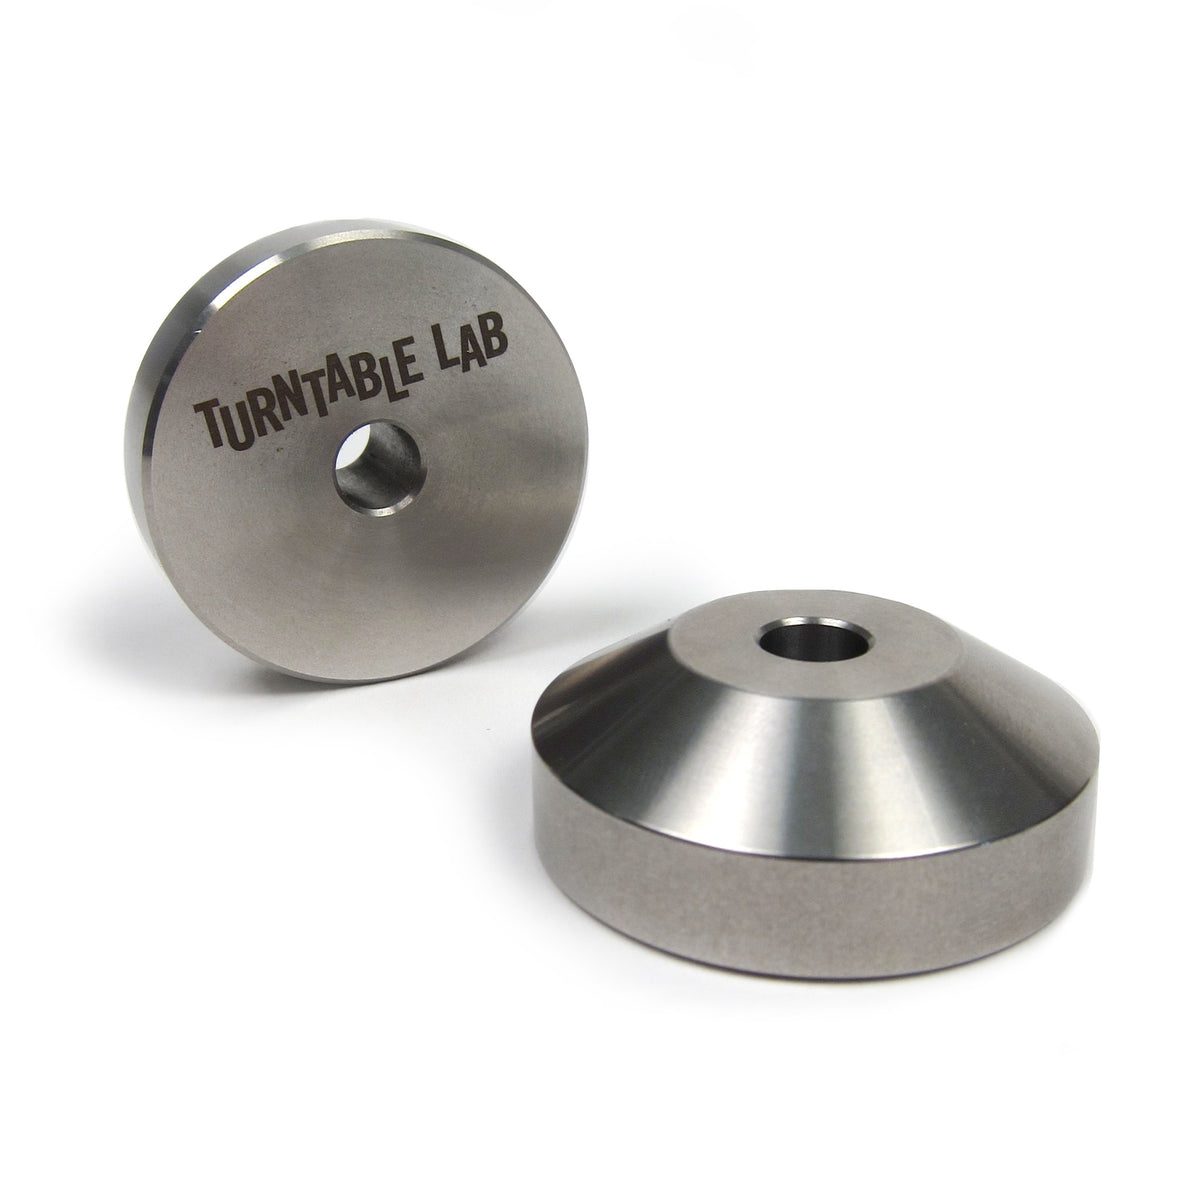 "Turntable Lab: Stainless Steel 45 Record Adaptor for 7"" Vinyl"